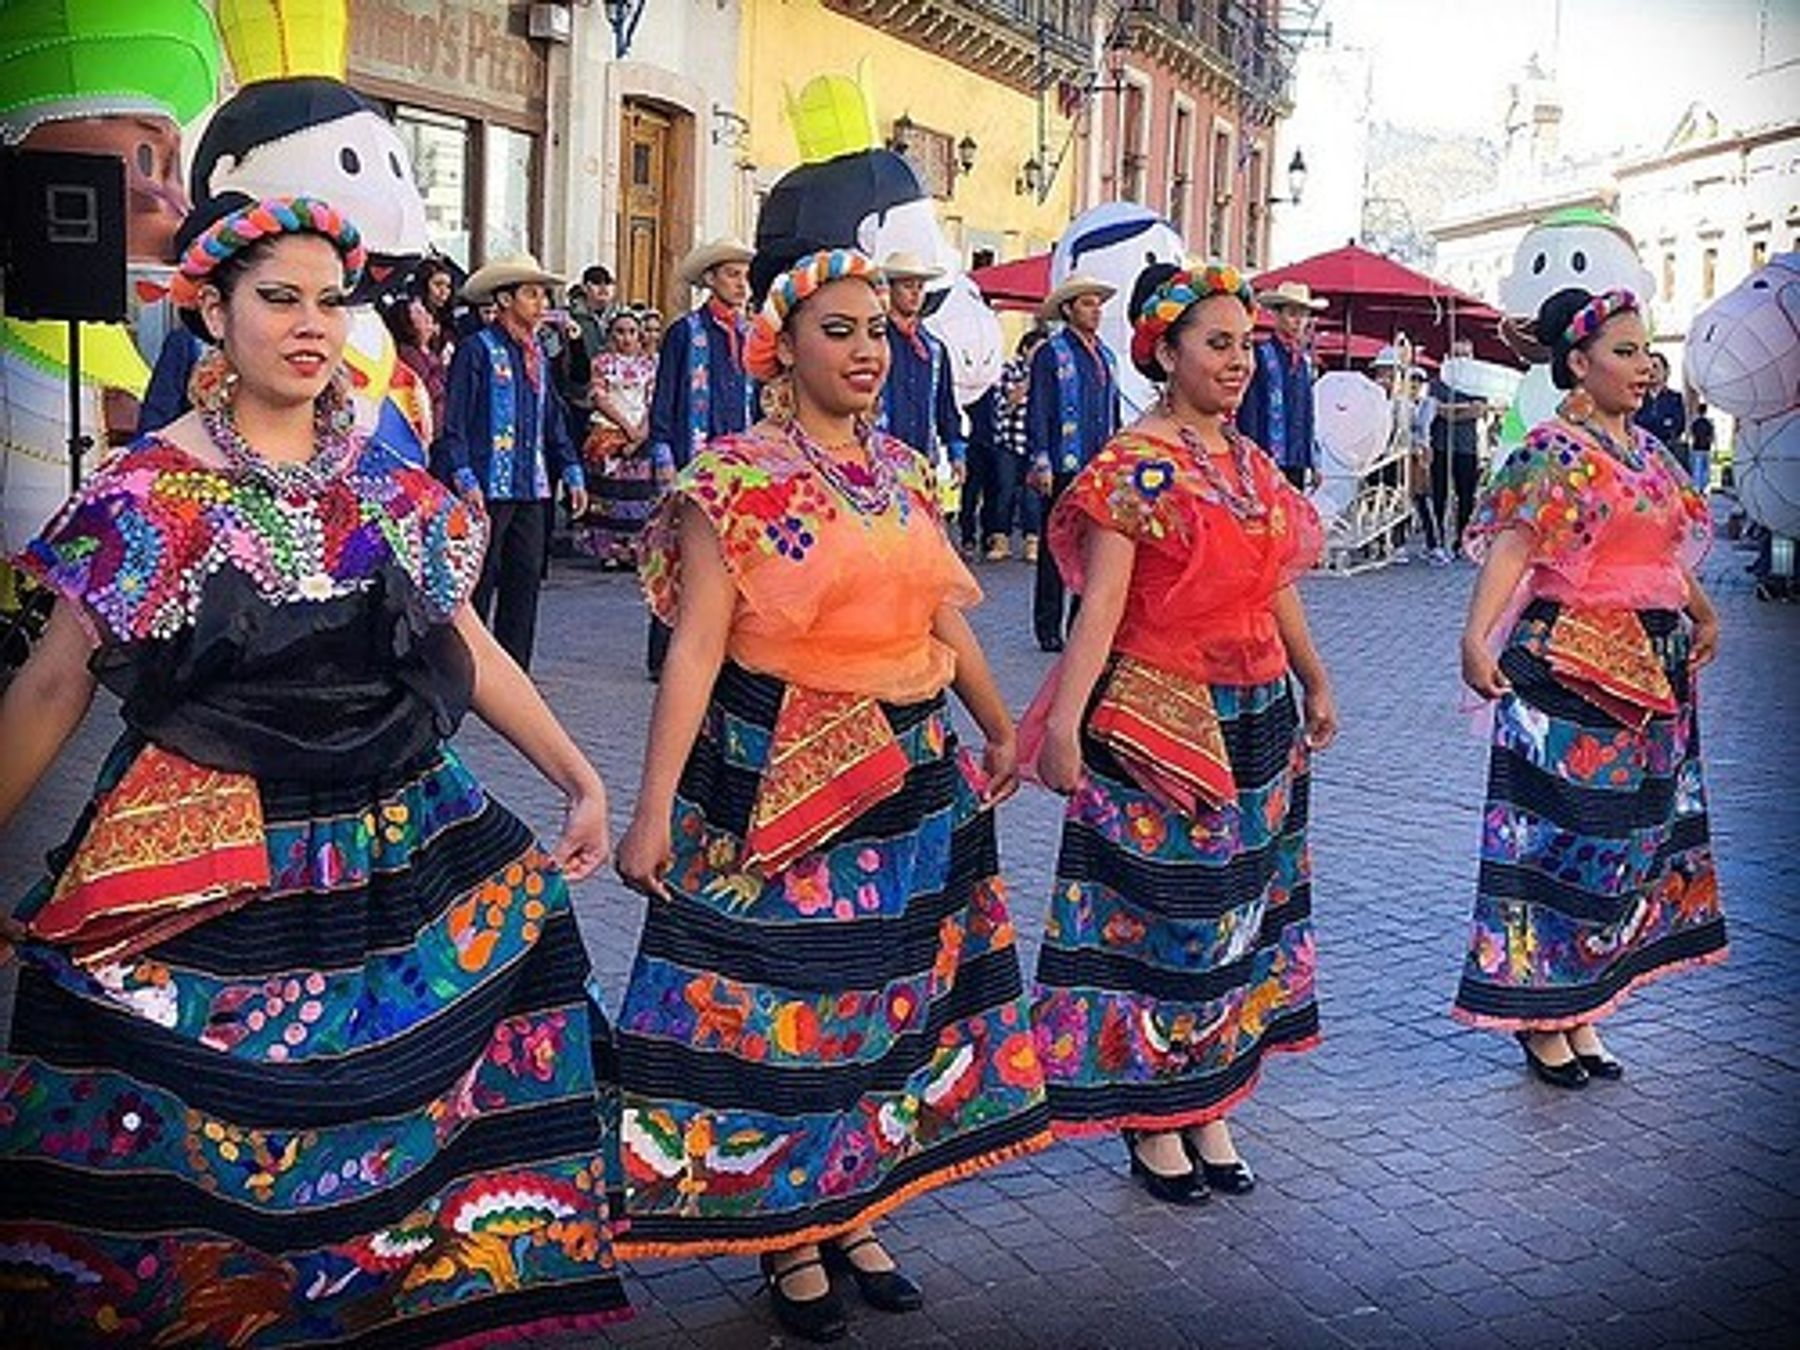 Holiday celebrations and dancing in Guanajuato, Mexico (December 2018)